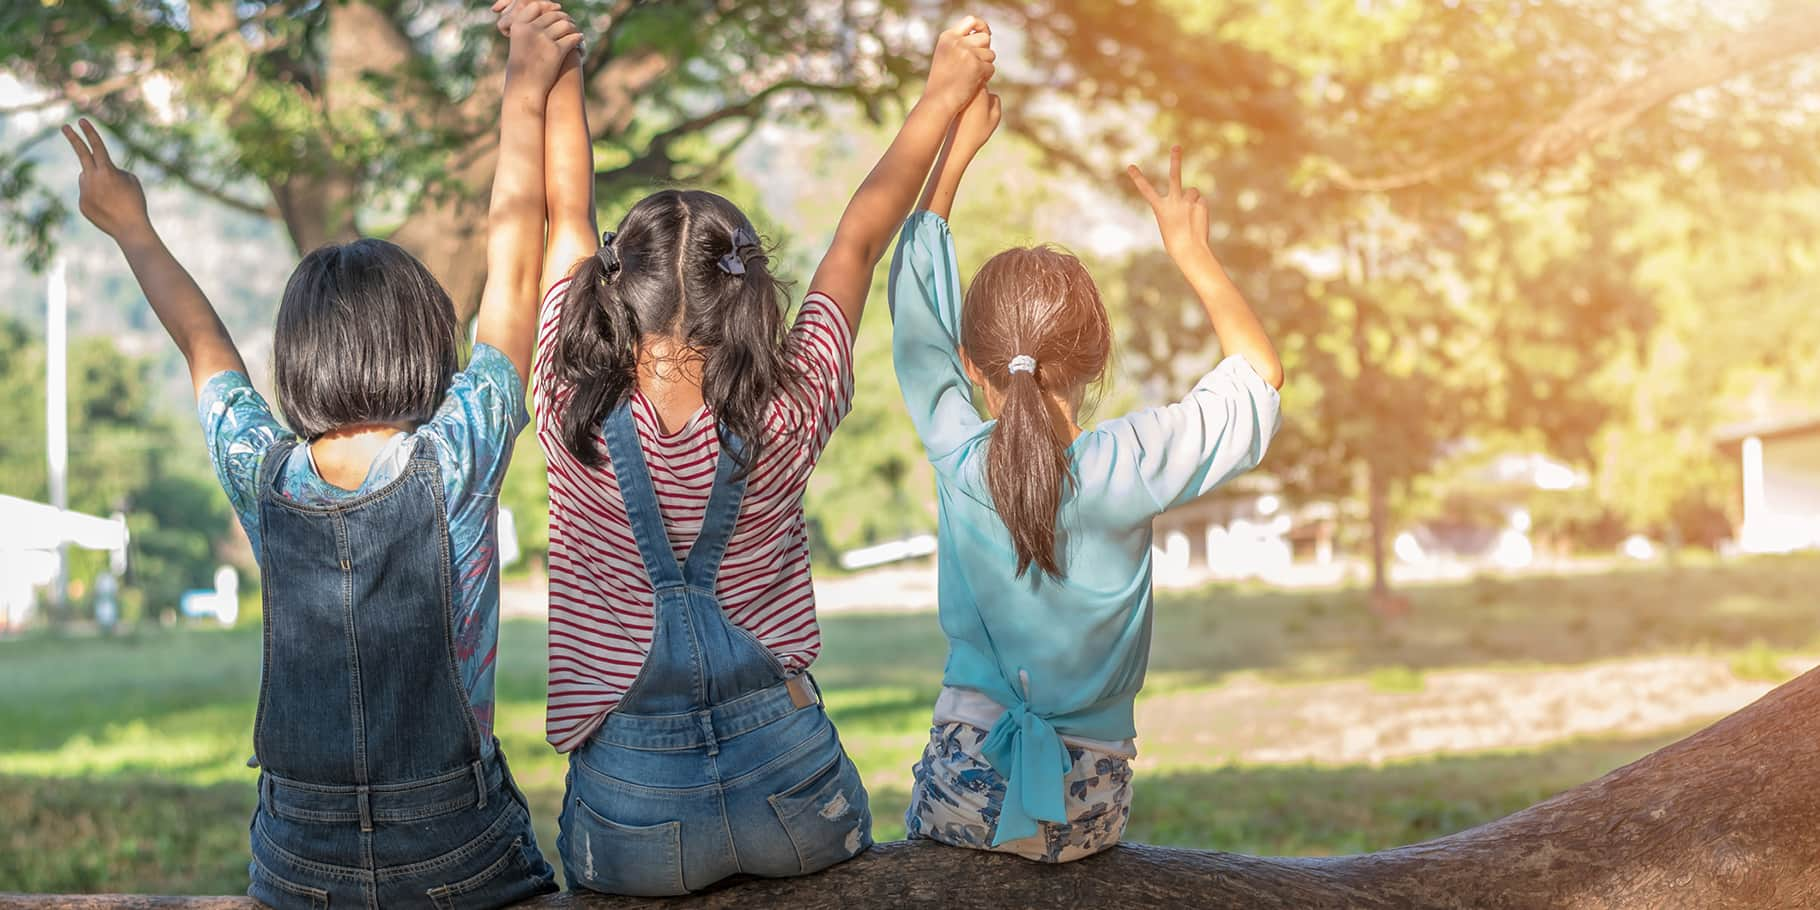 Three young girls sitting on a tree and making the peace sign with outstretched arms.